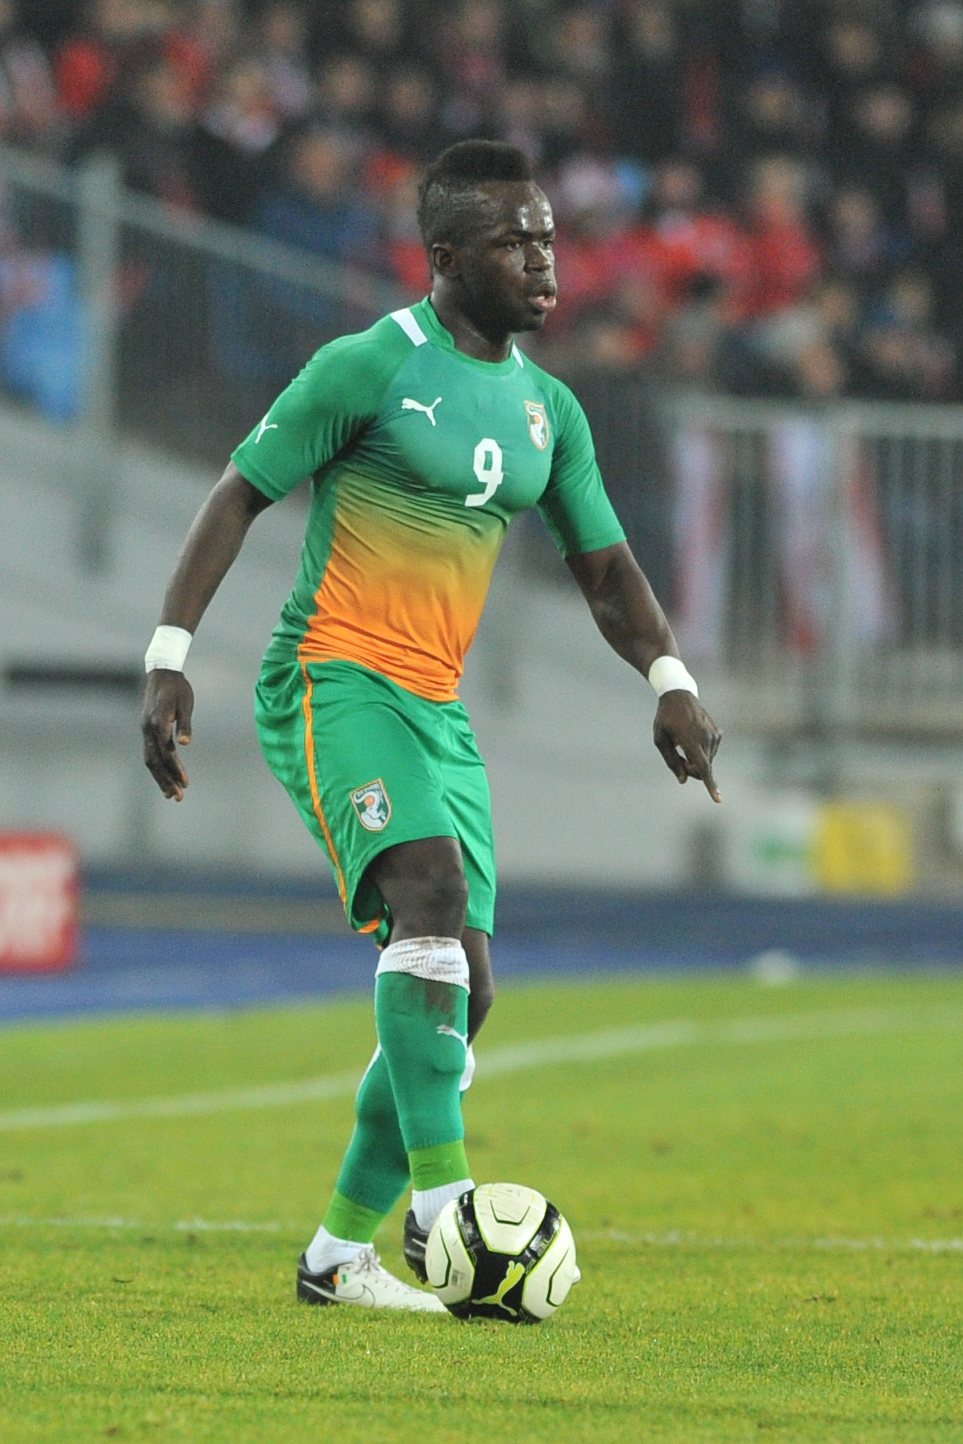 http://upload.wikimedia.org/wikipedia/commons/8/8a/Cheick_Ismael_Tiote_9030.JPG